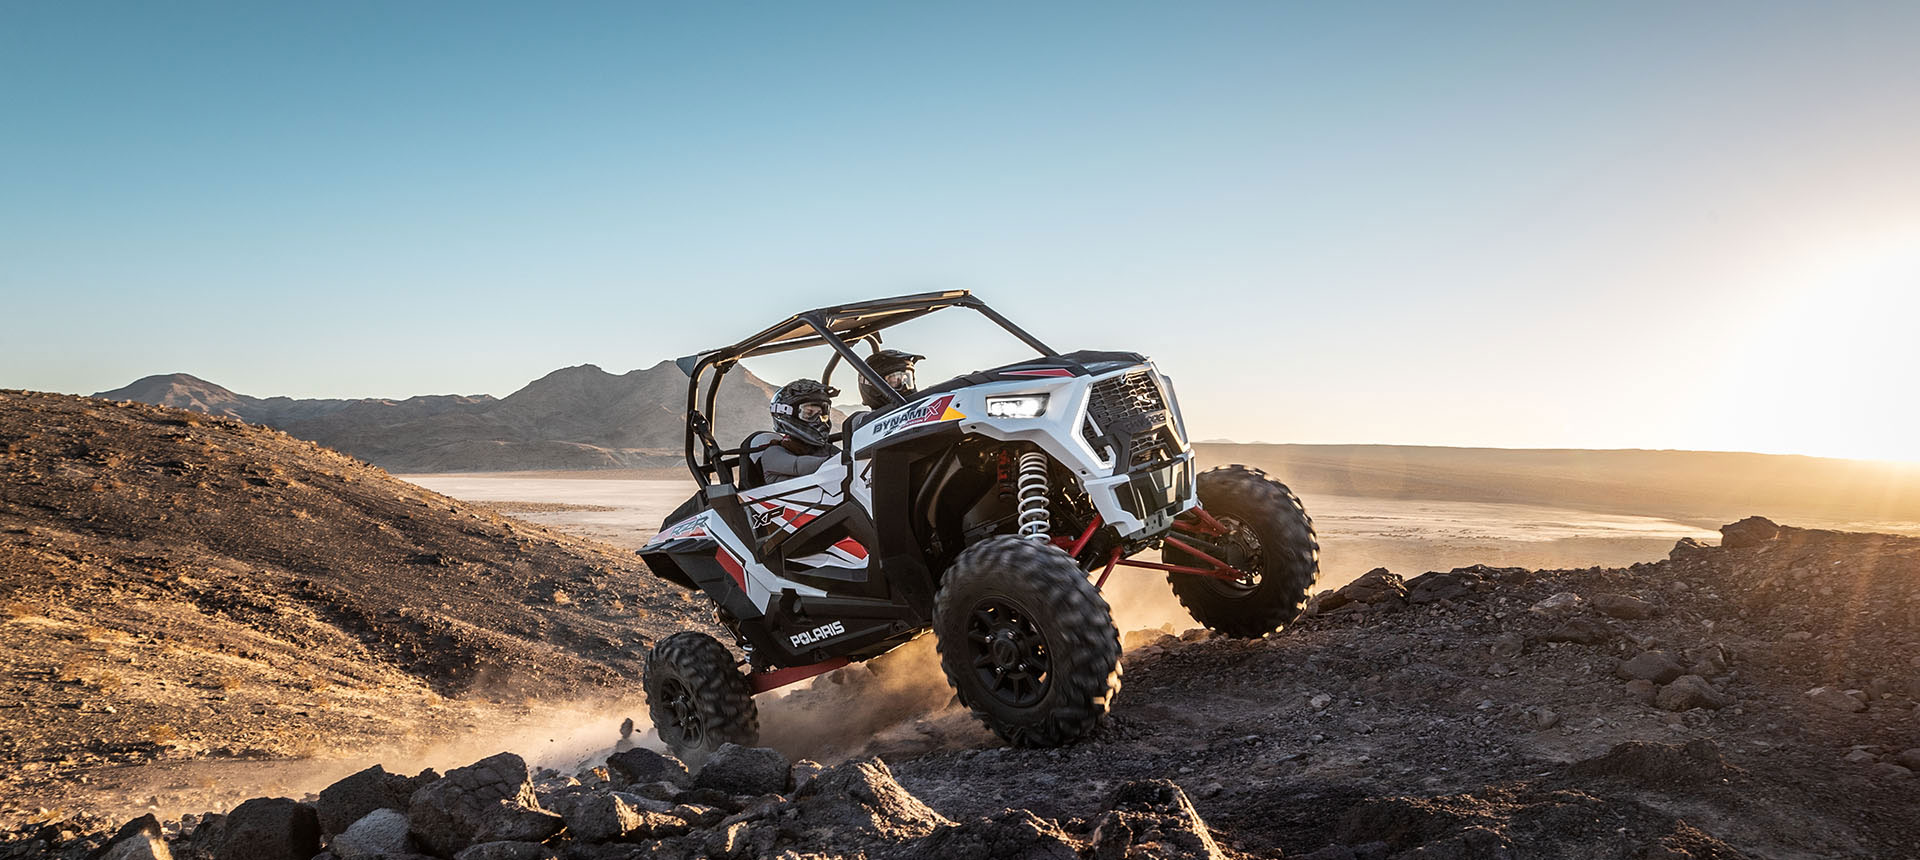 2019 Polaris RZR XP 1000 in Logan, Utah - Photo 4